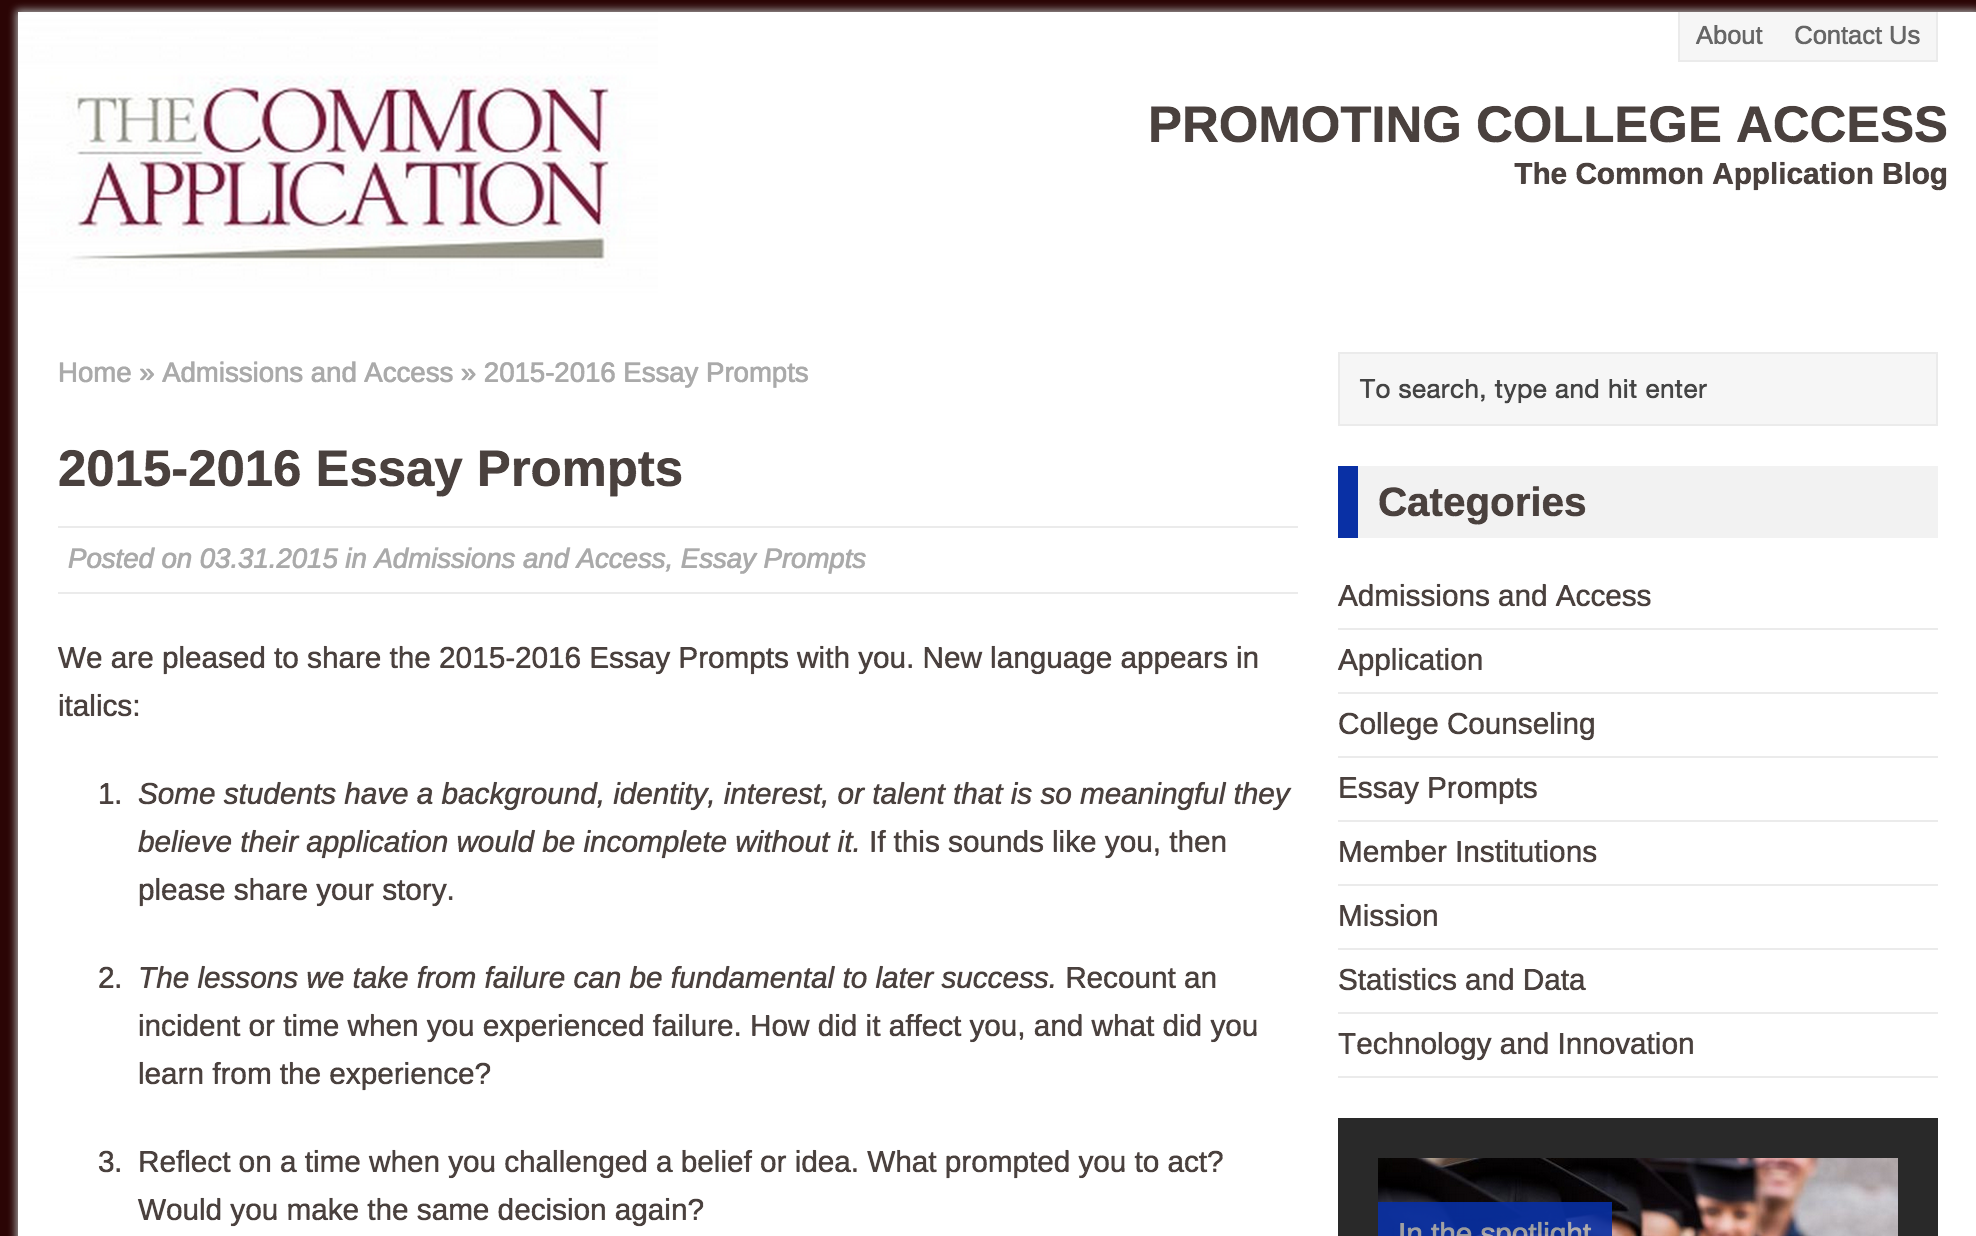 005 Screen Shot At Pm College Essay Prompts Shocking 2015 Admission Full